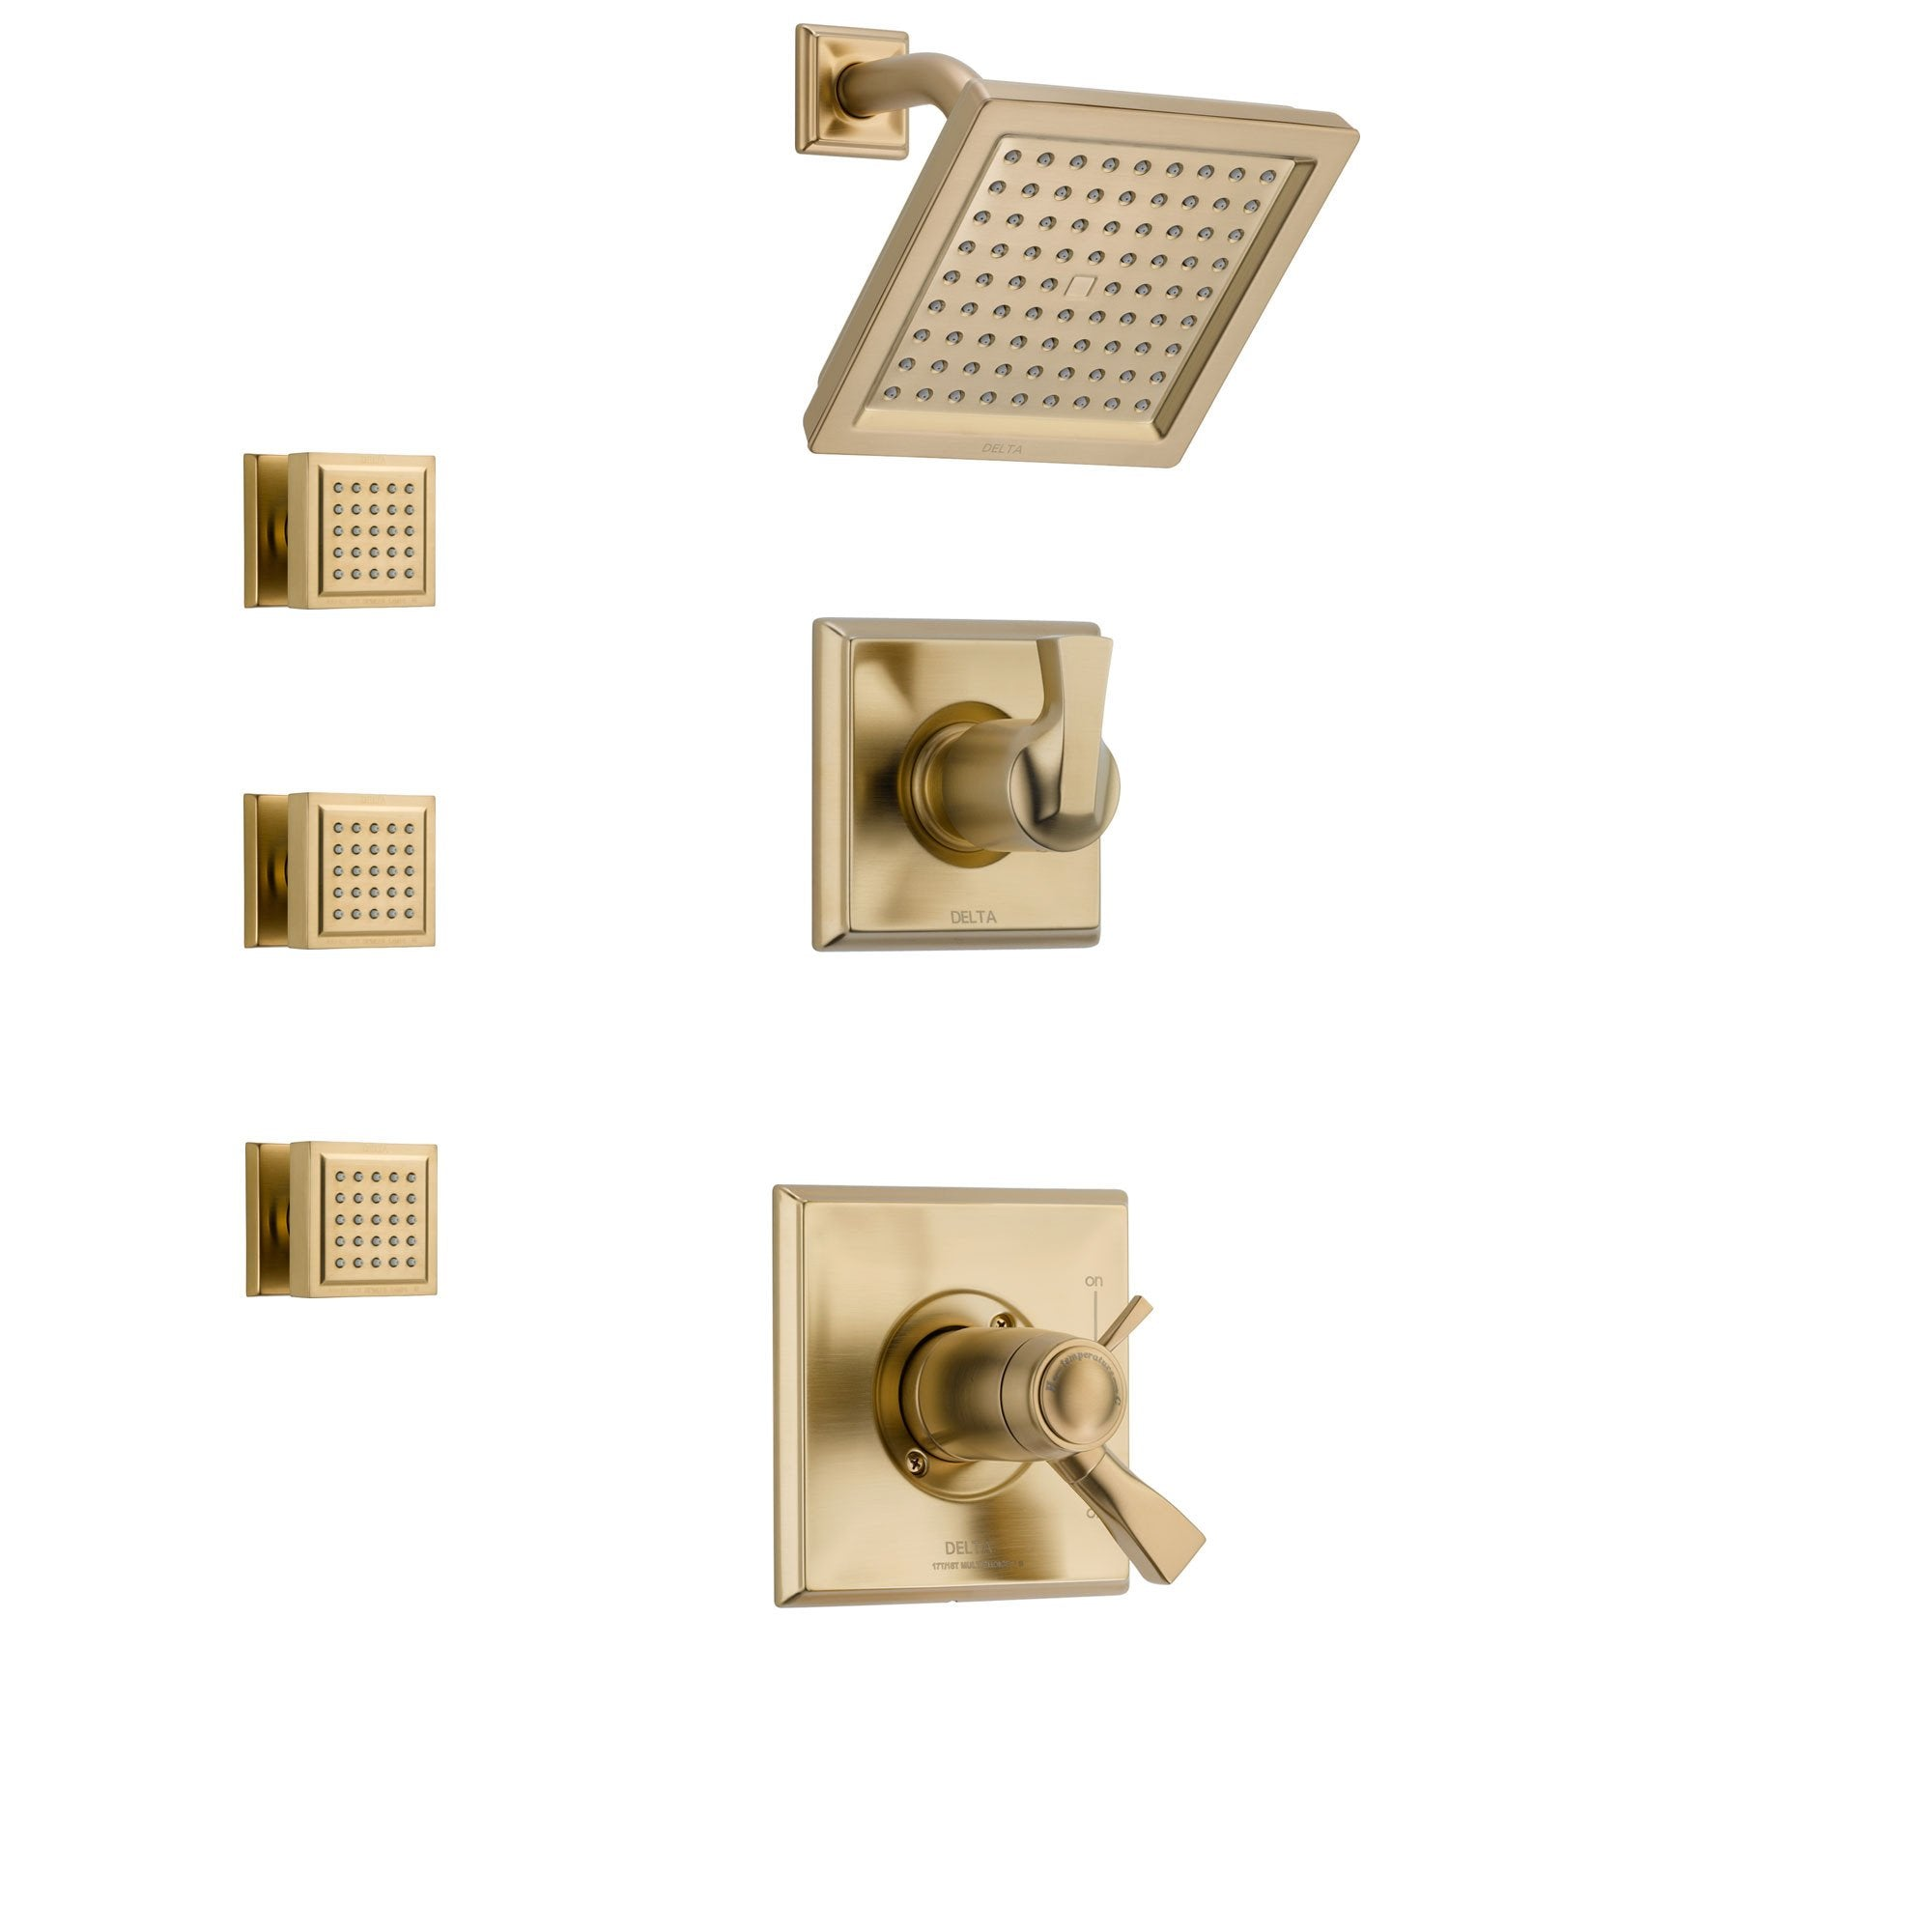 Delta Dryden Champagne Bronze Shower System with Thermostatic Shower Handle, 3-setting Diverter, Square Showerhead, and 3 Modern Square Body Sprays SS17T5181CZ